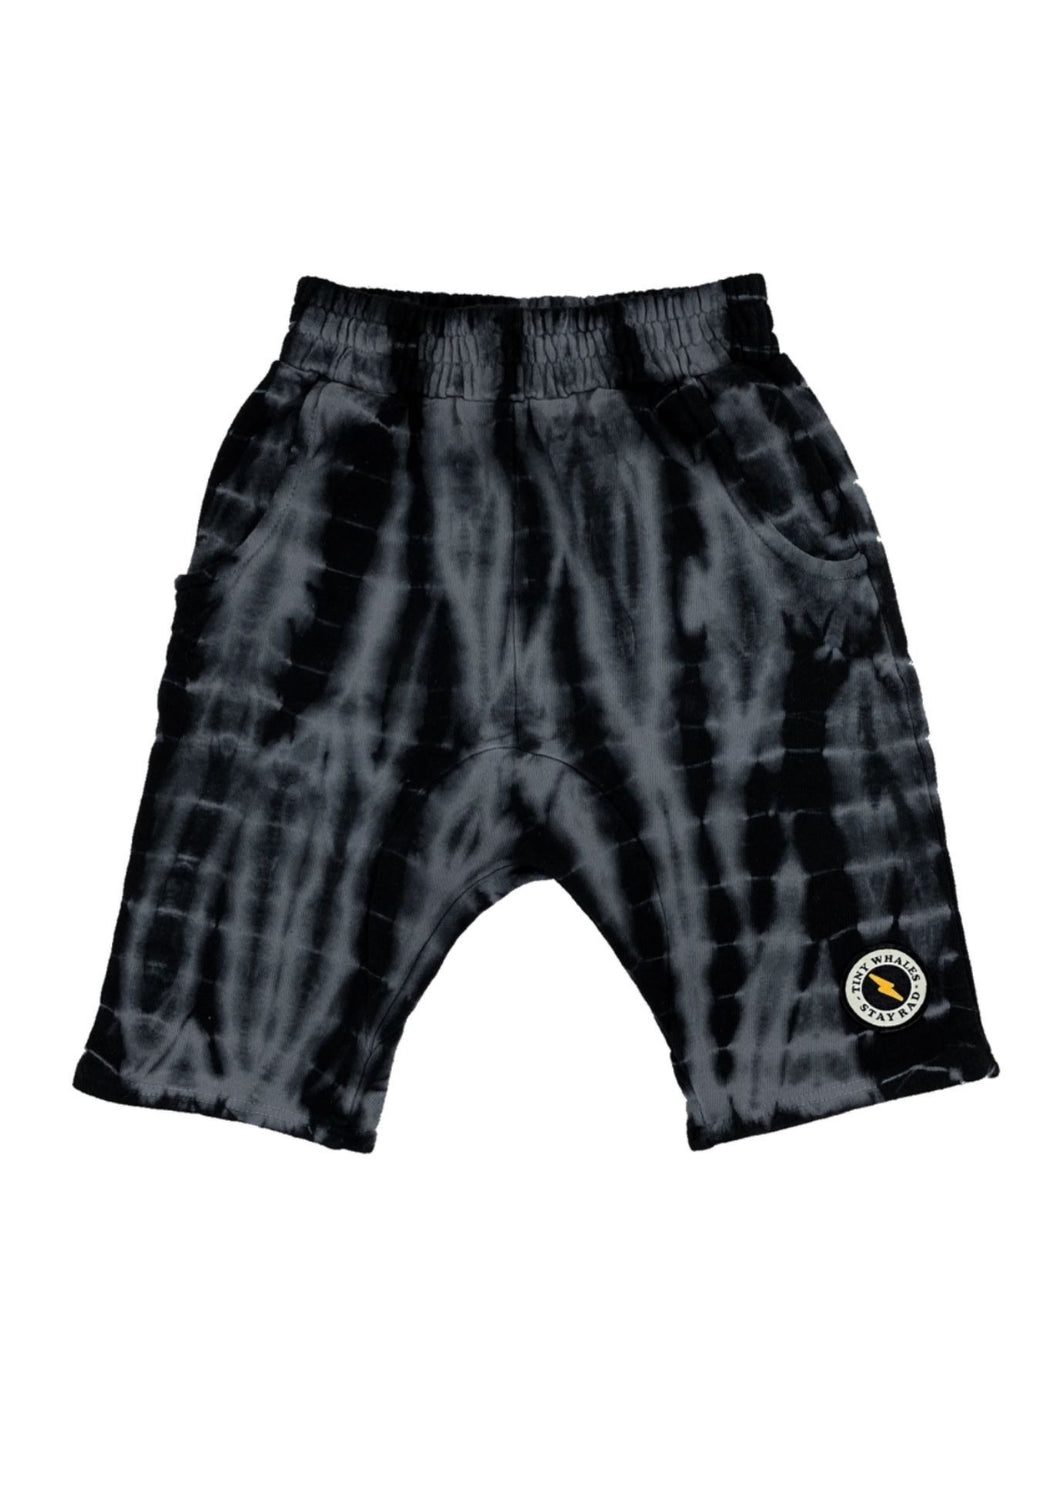 Tiny Whales Have A Rad Day Cozy Shorts Black Tie Dye